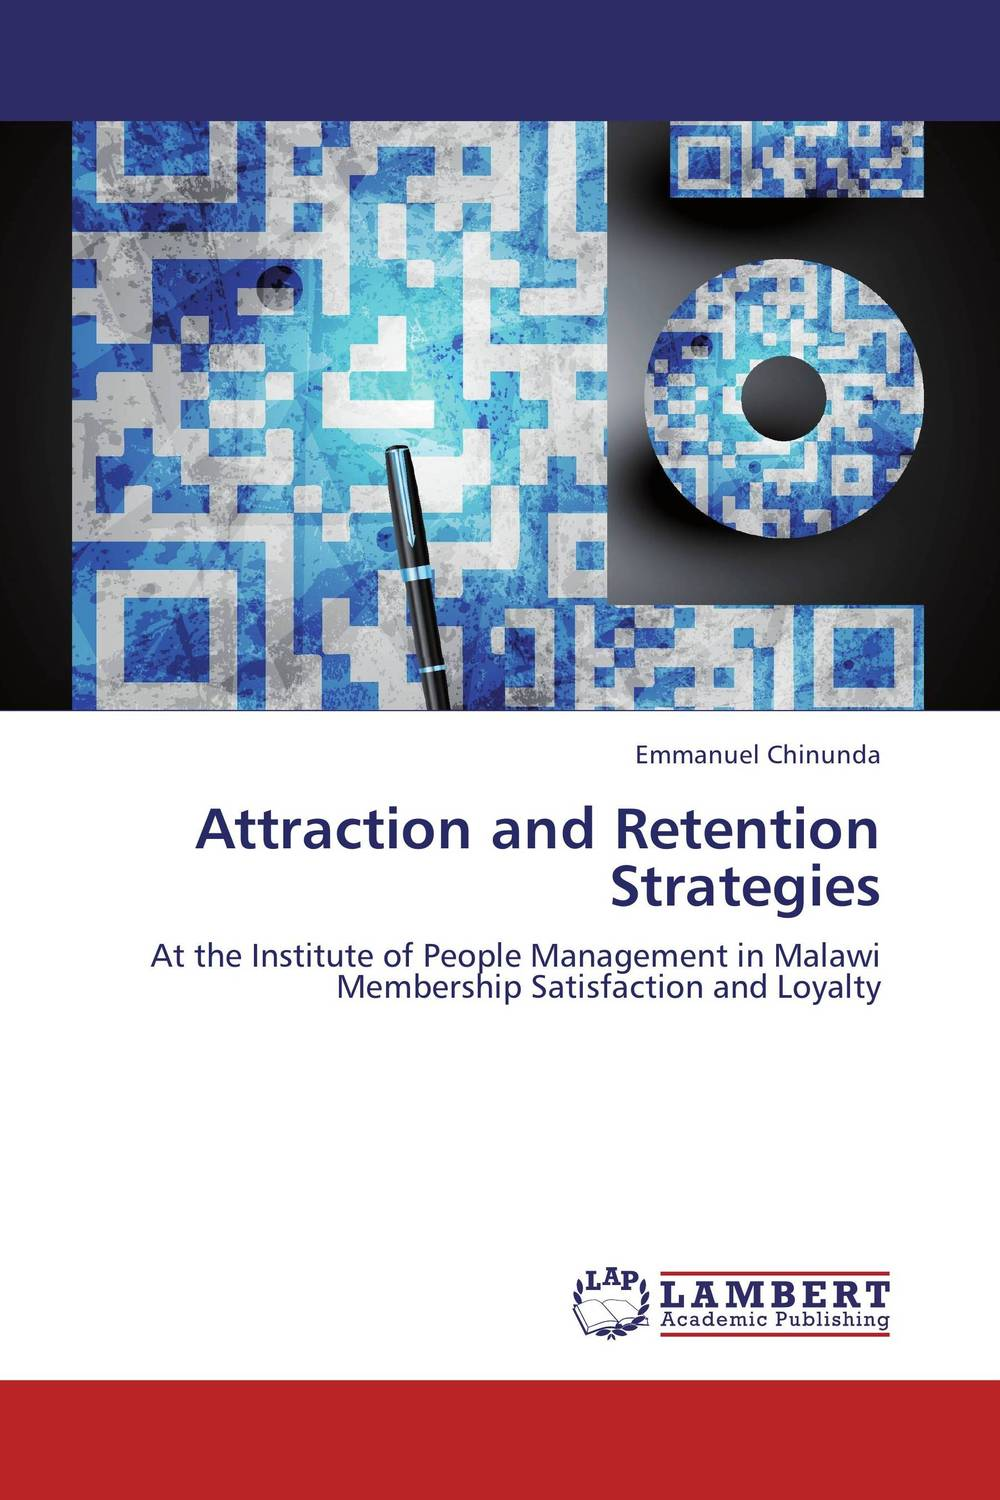 Attraction and Retention Strategies lette kathy foetal attraction